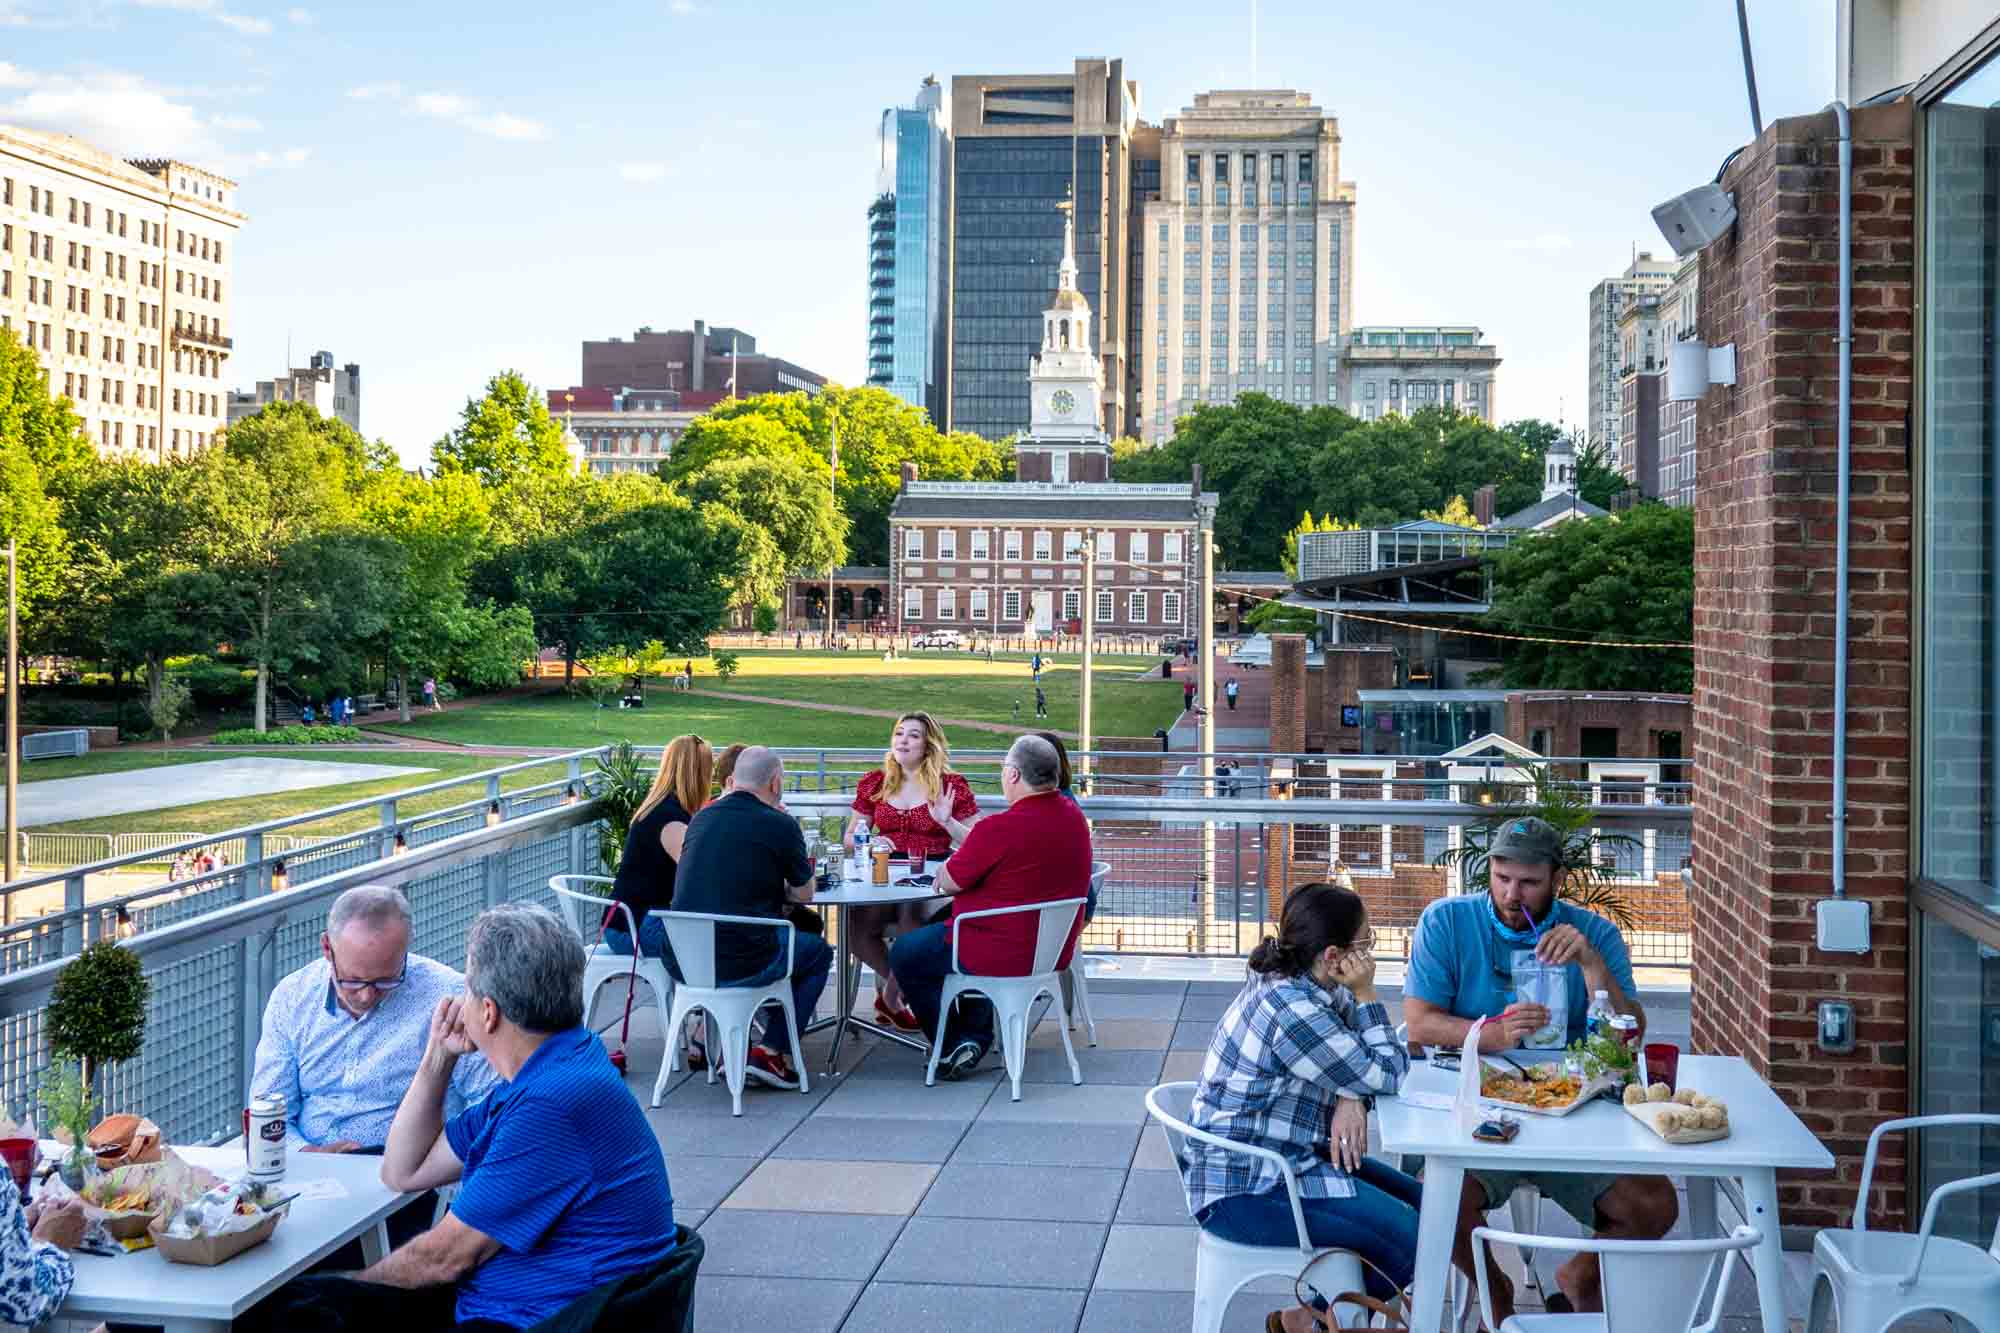 People seated at tables on an outdoor deck with a view of Independence Hall